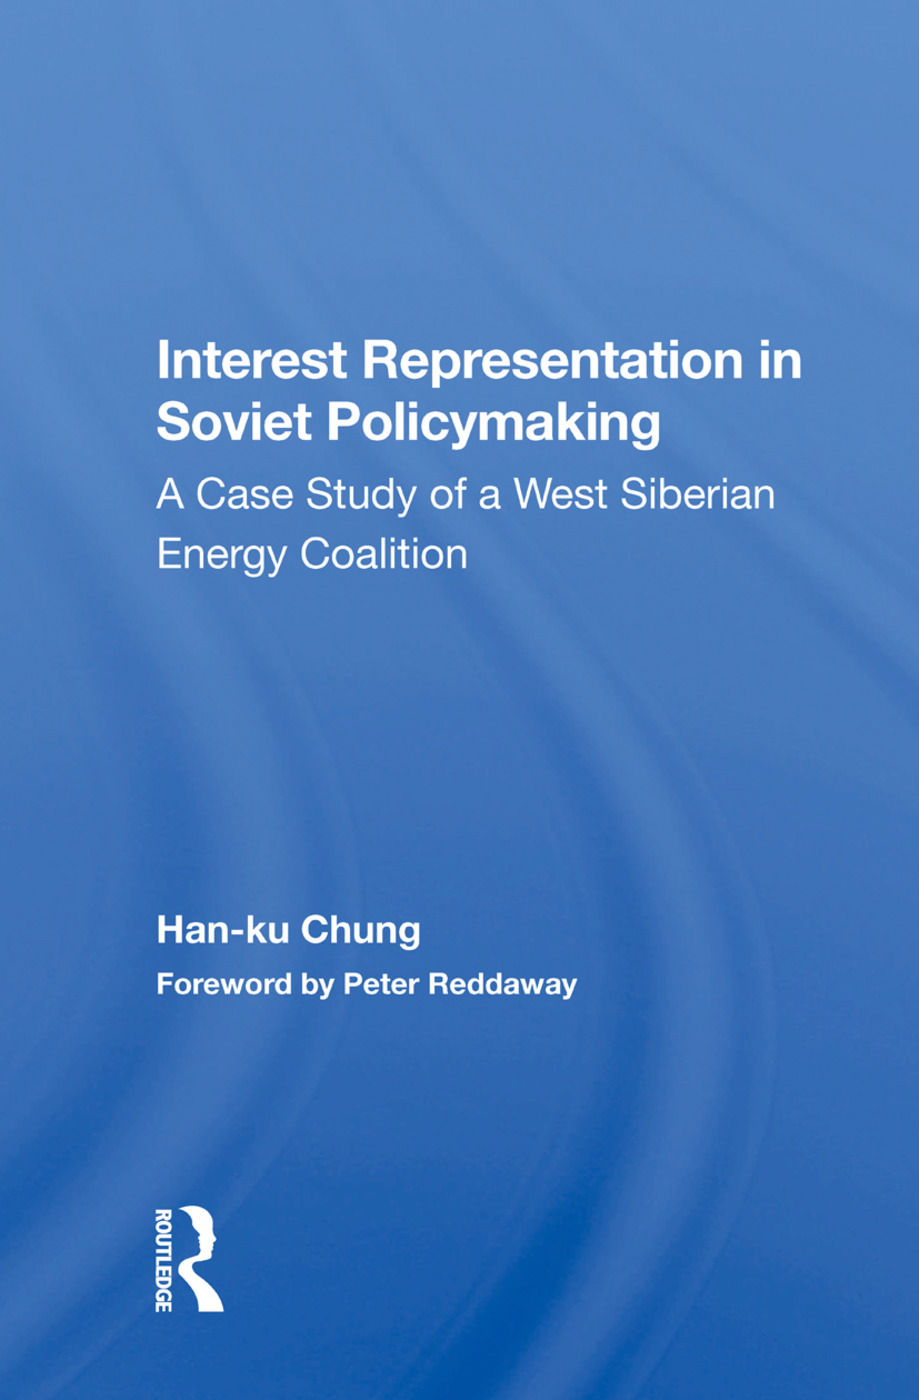 Interest Representation In Soviet Policymaking: A Case Study Of A West Siberian Energy Coalition book cover